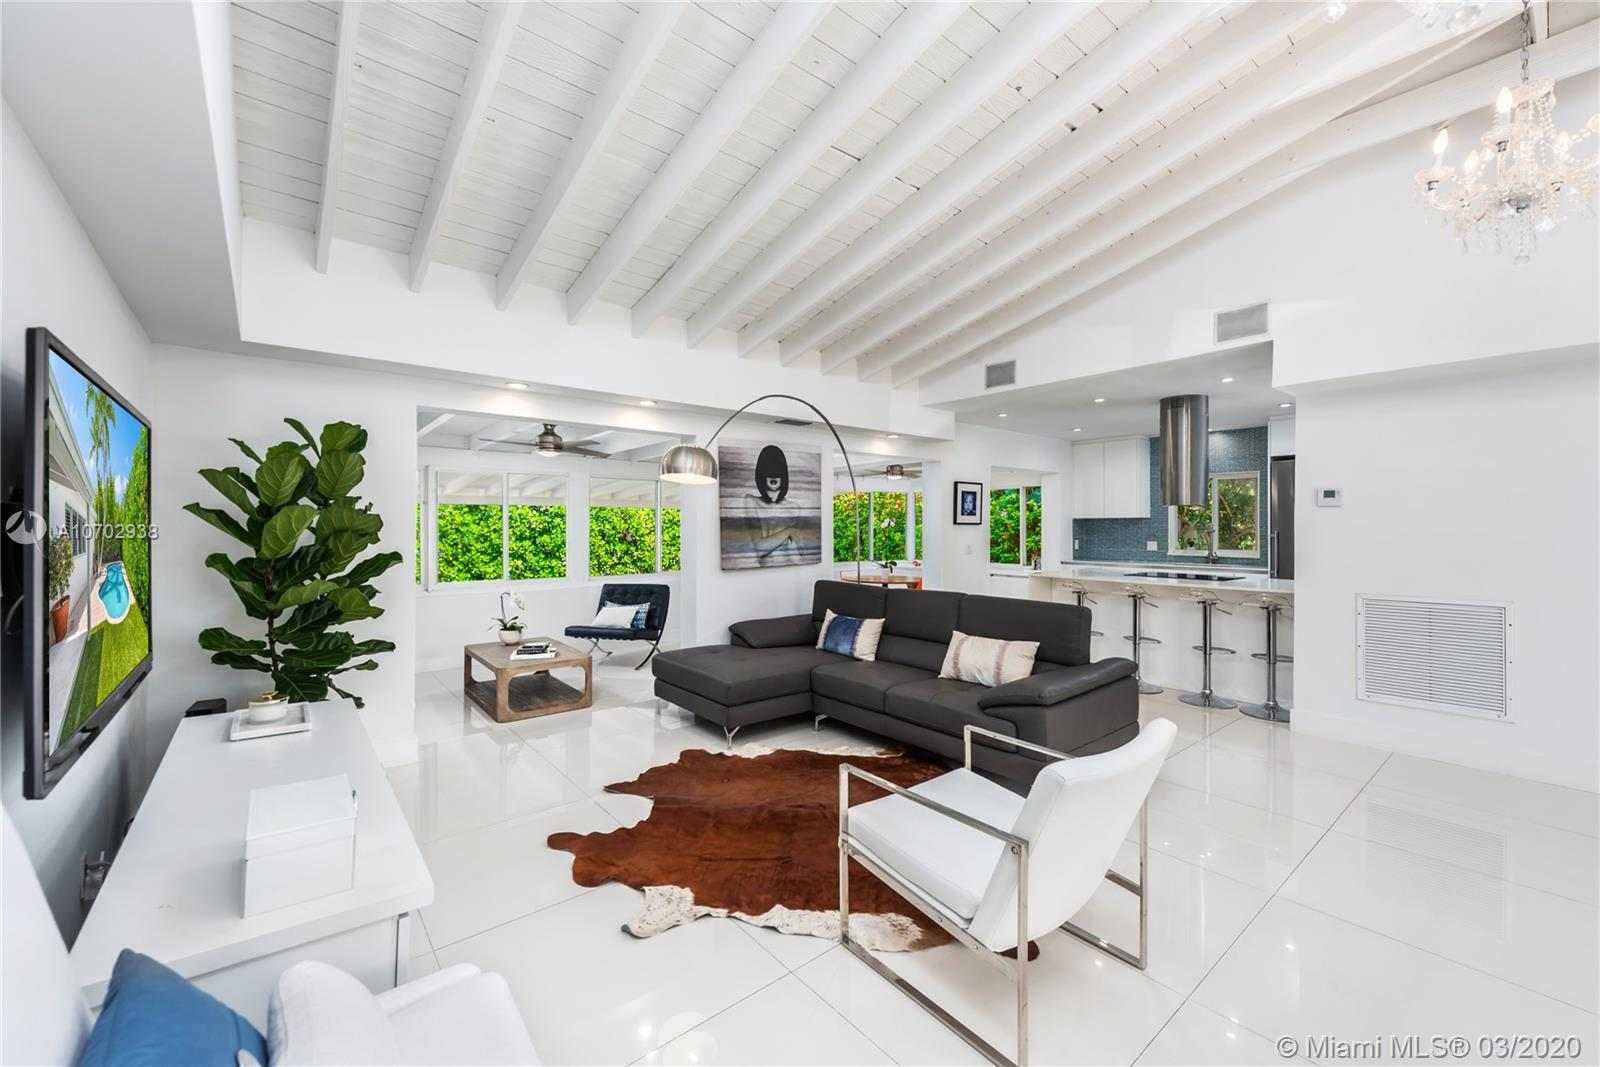 One of Key Biscayne 3 Bedroom Homes for Sale at 544 Allendale Rd